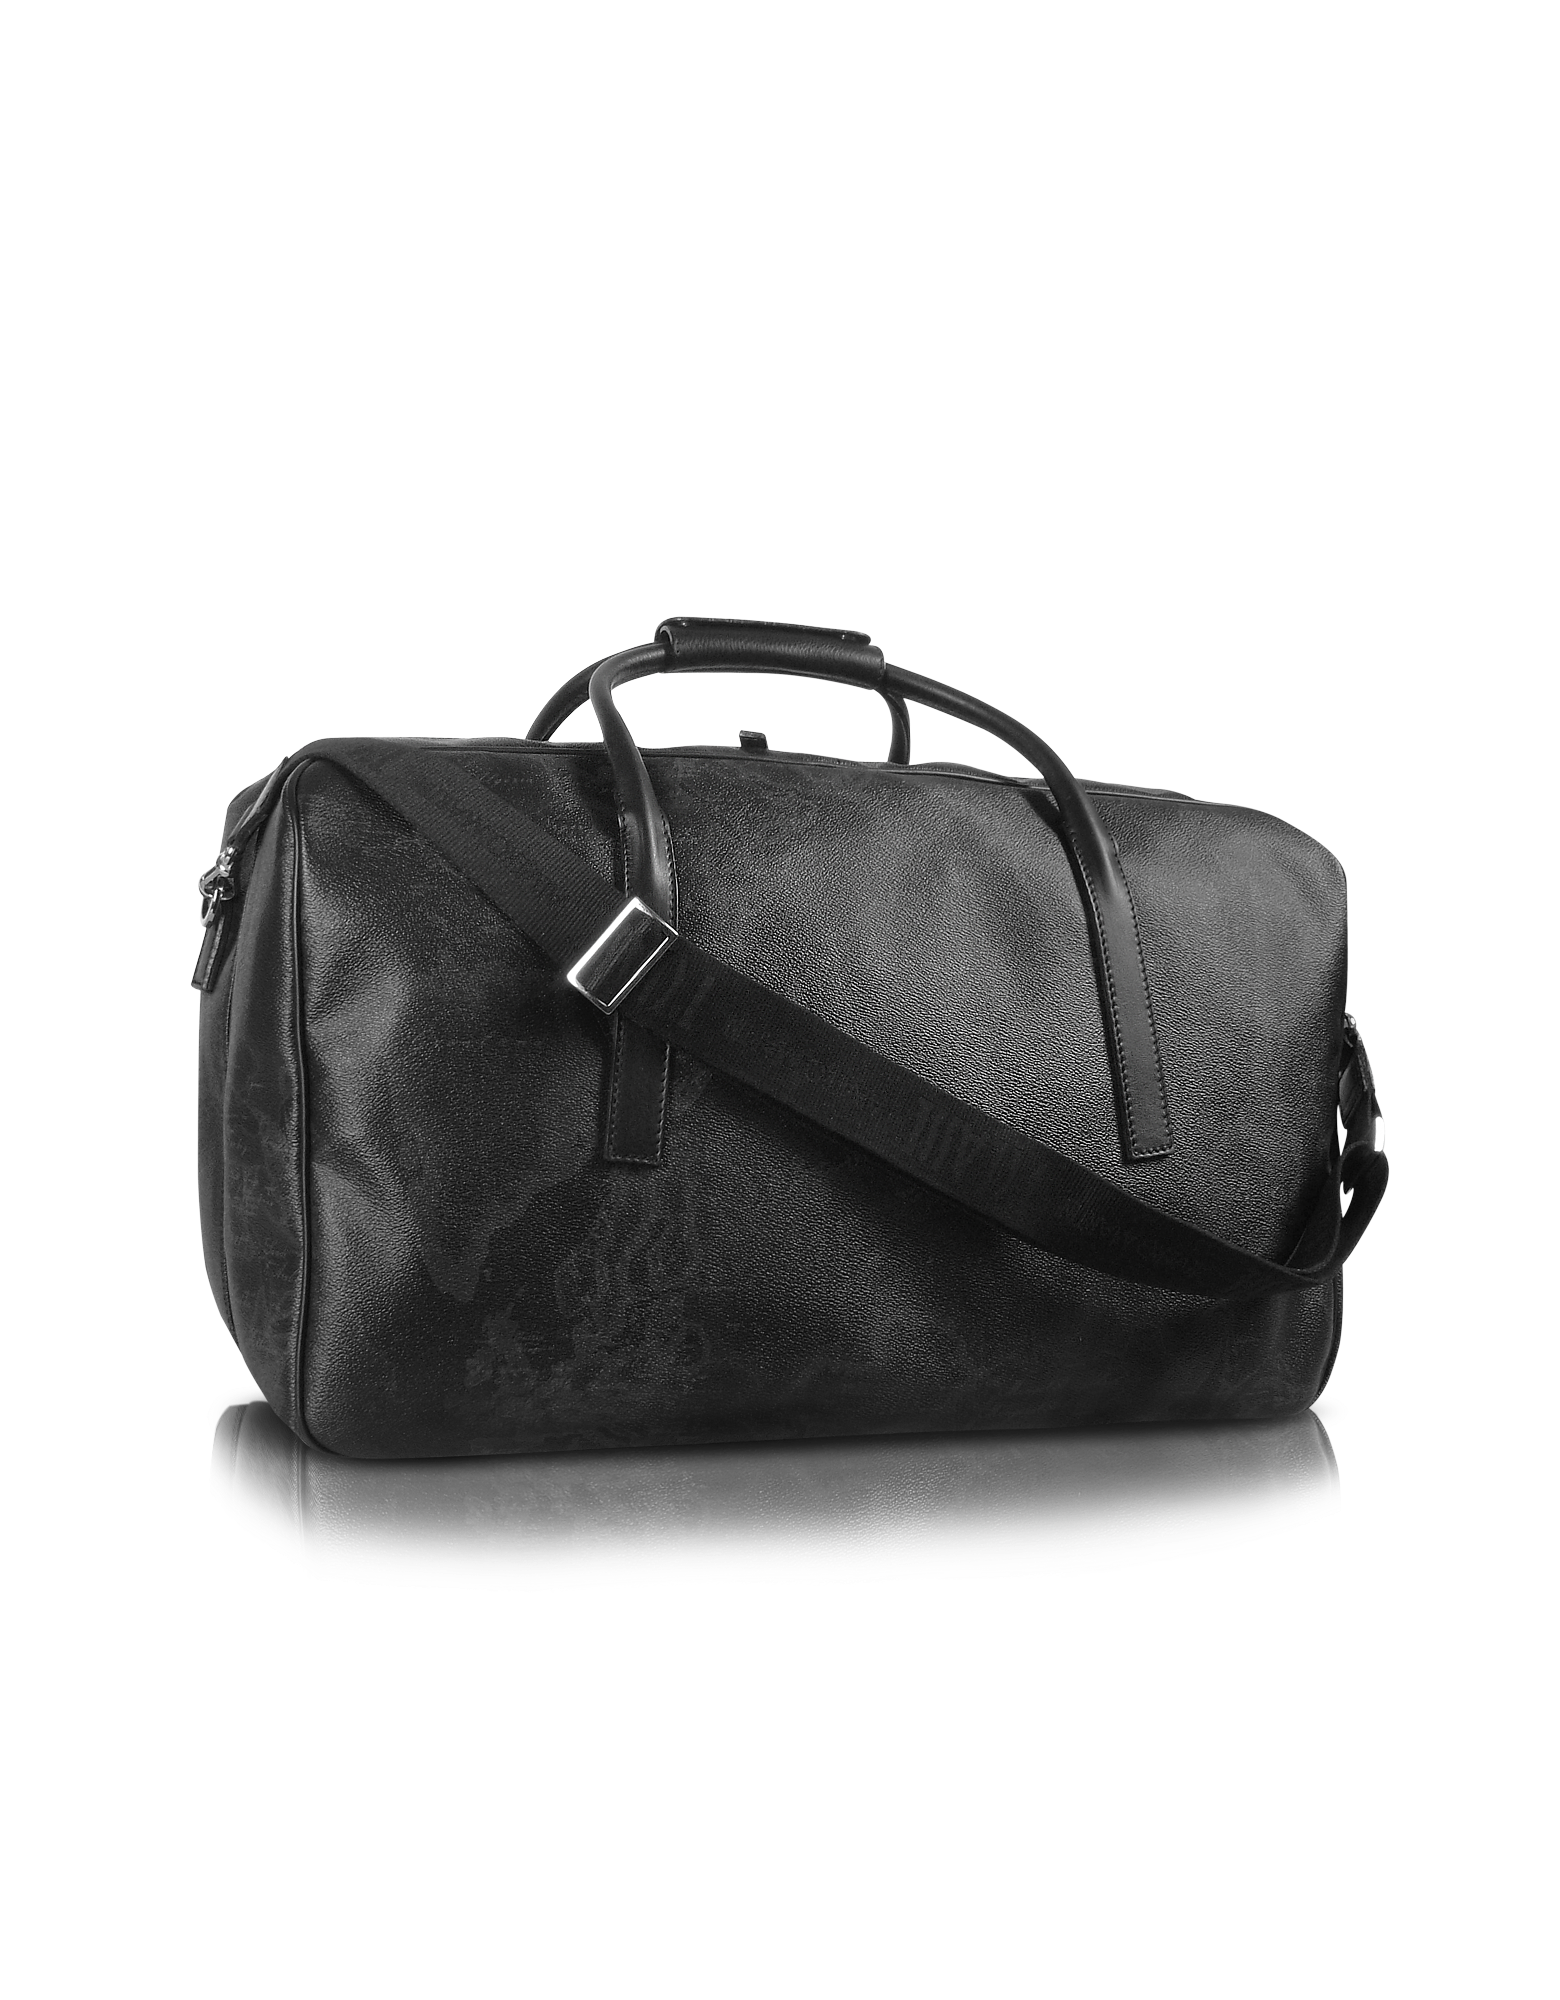 Image of 1a Prima Classe - Geo Black Double Compartment Zip Travel Bag